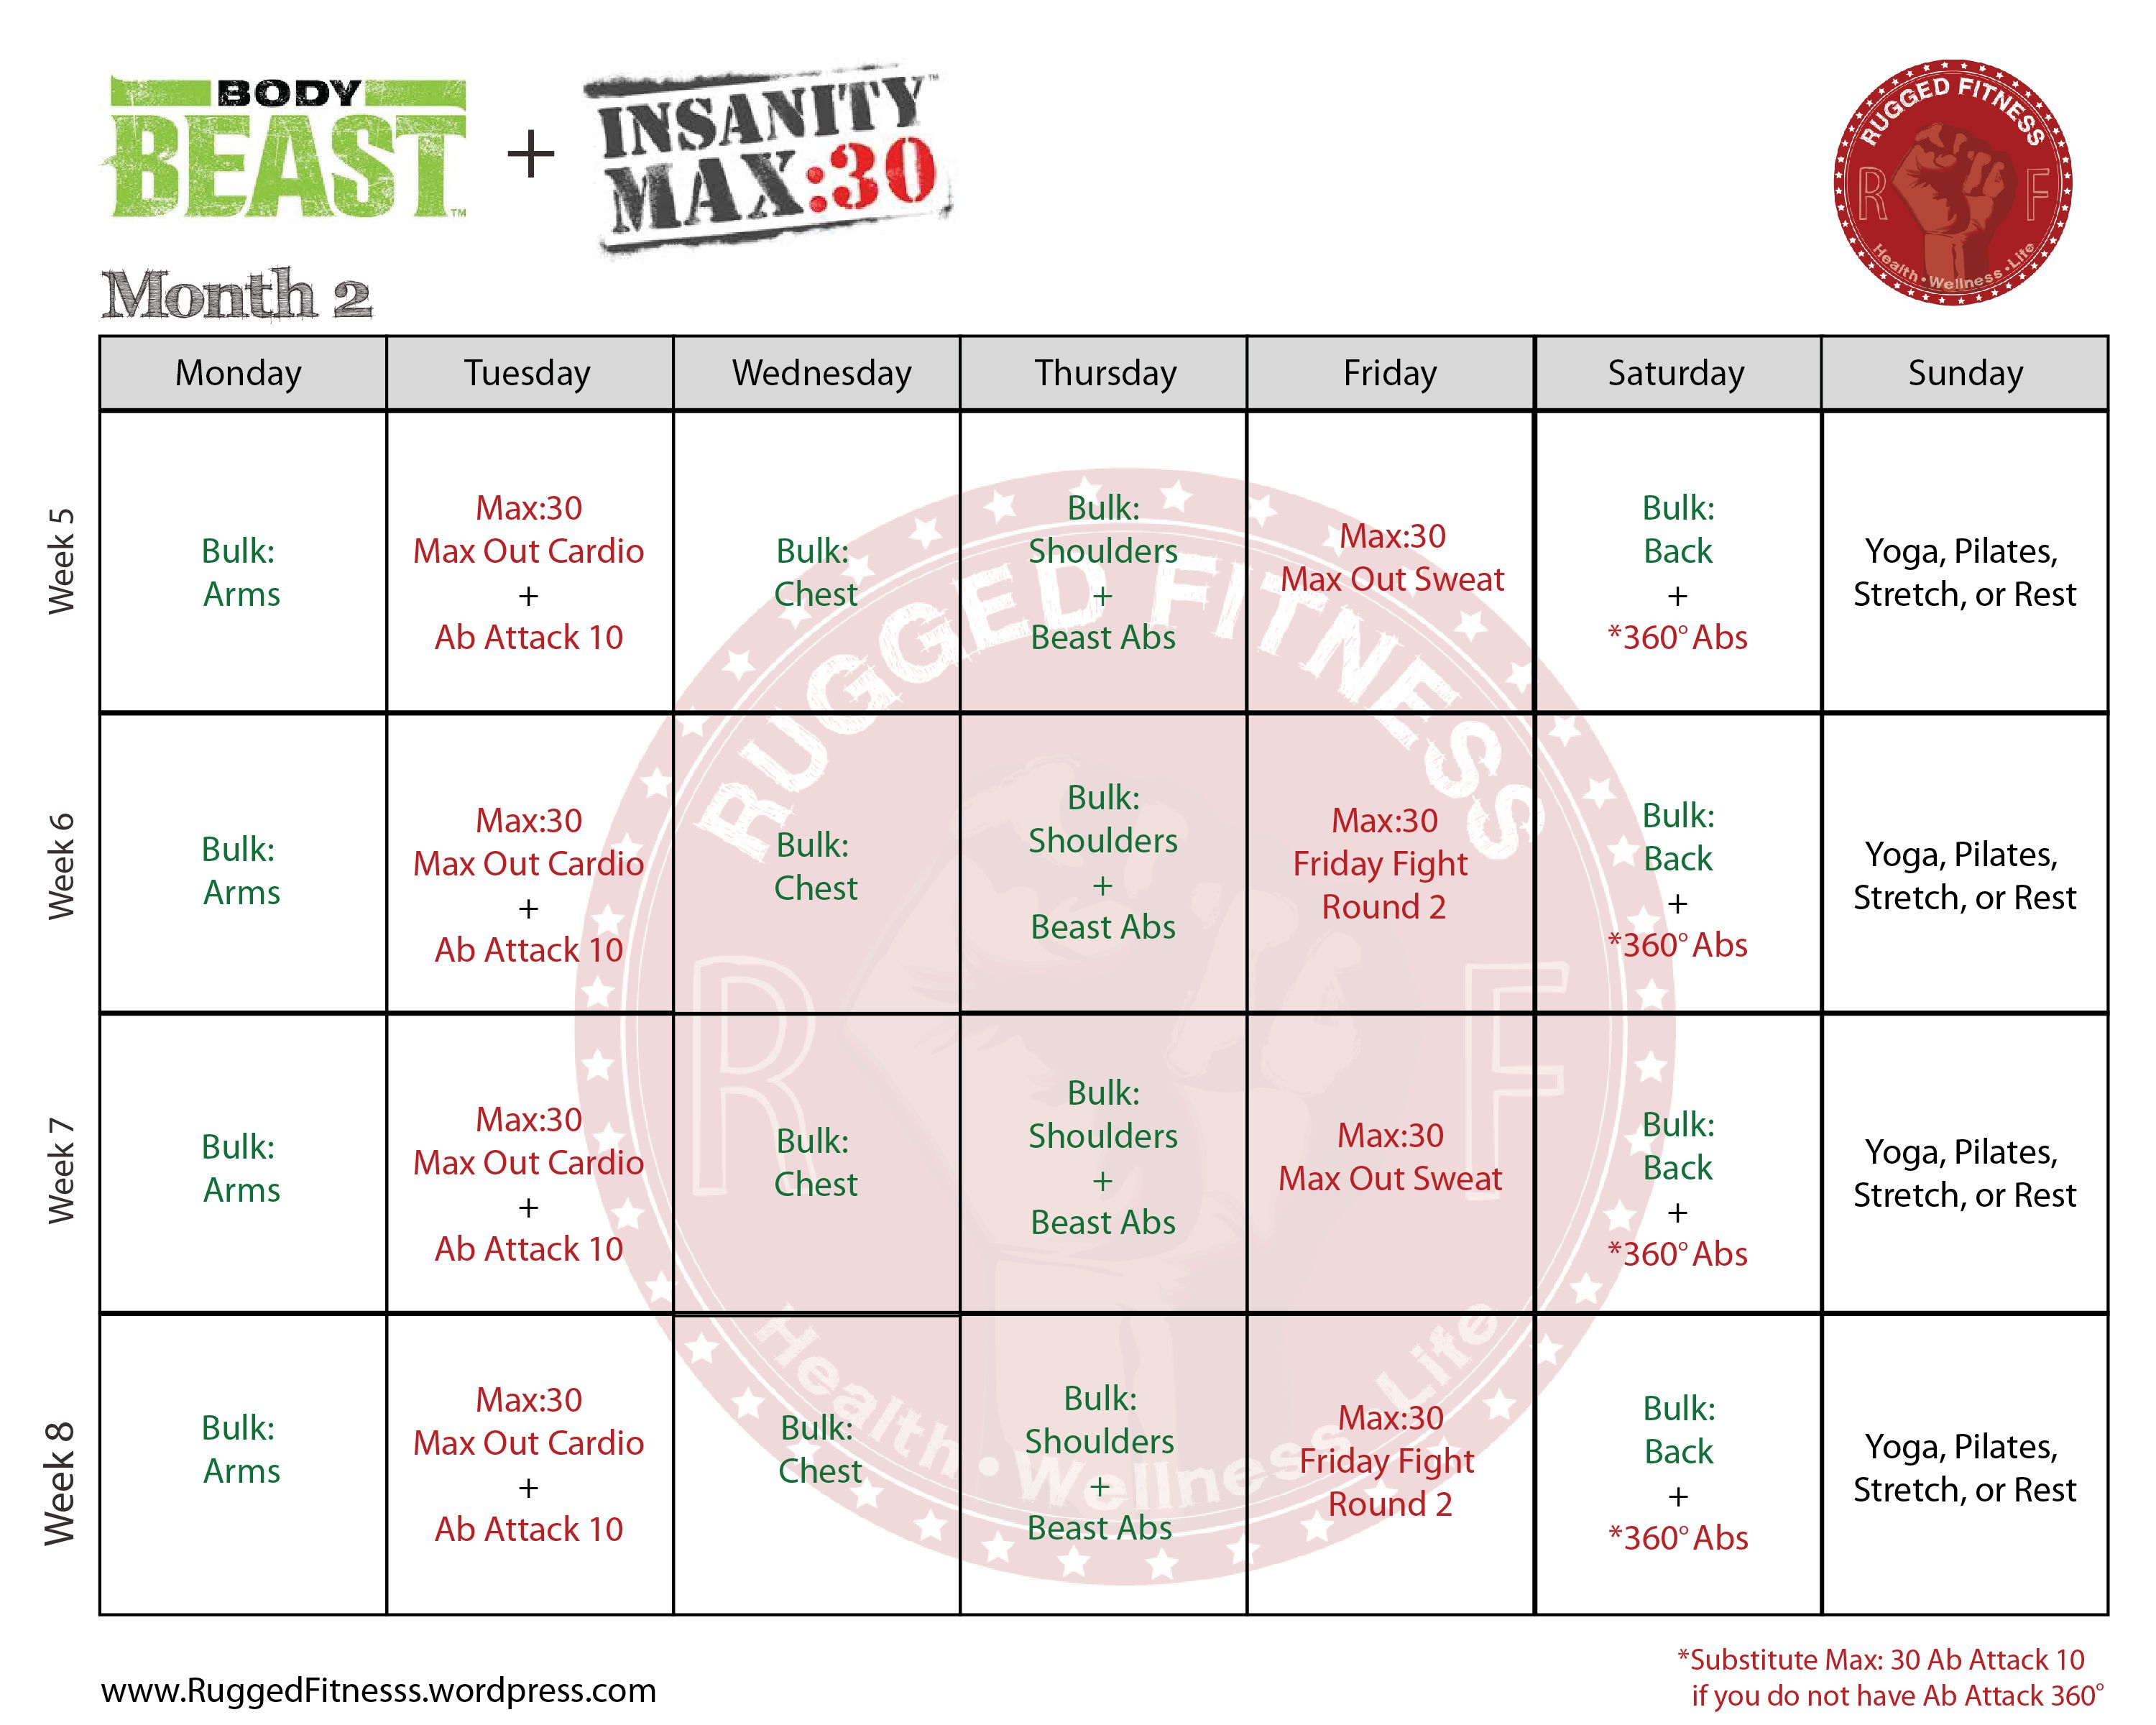 Body Beast Insanity Max 30 Hybrid Schedule